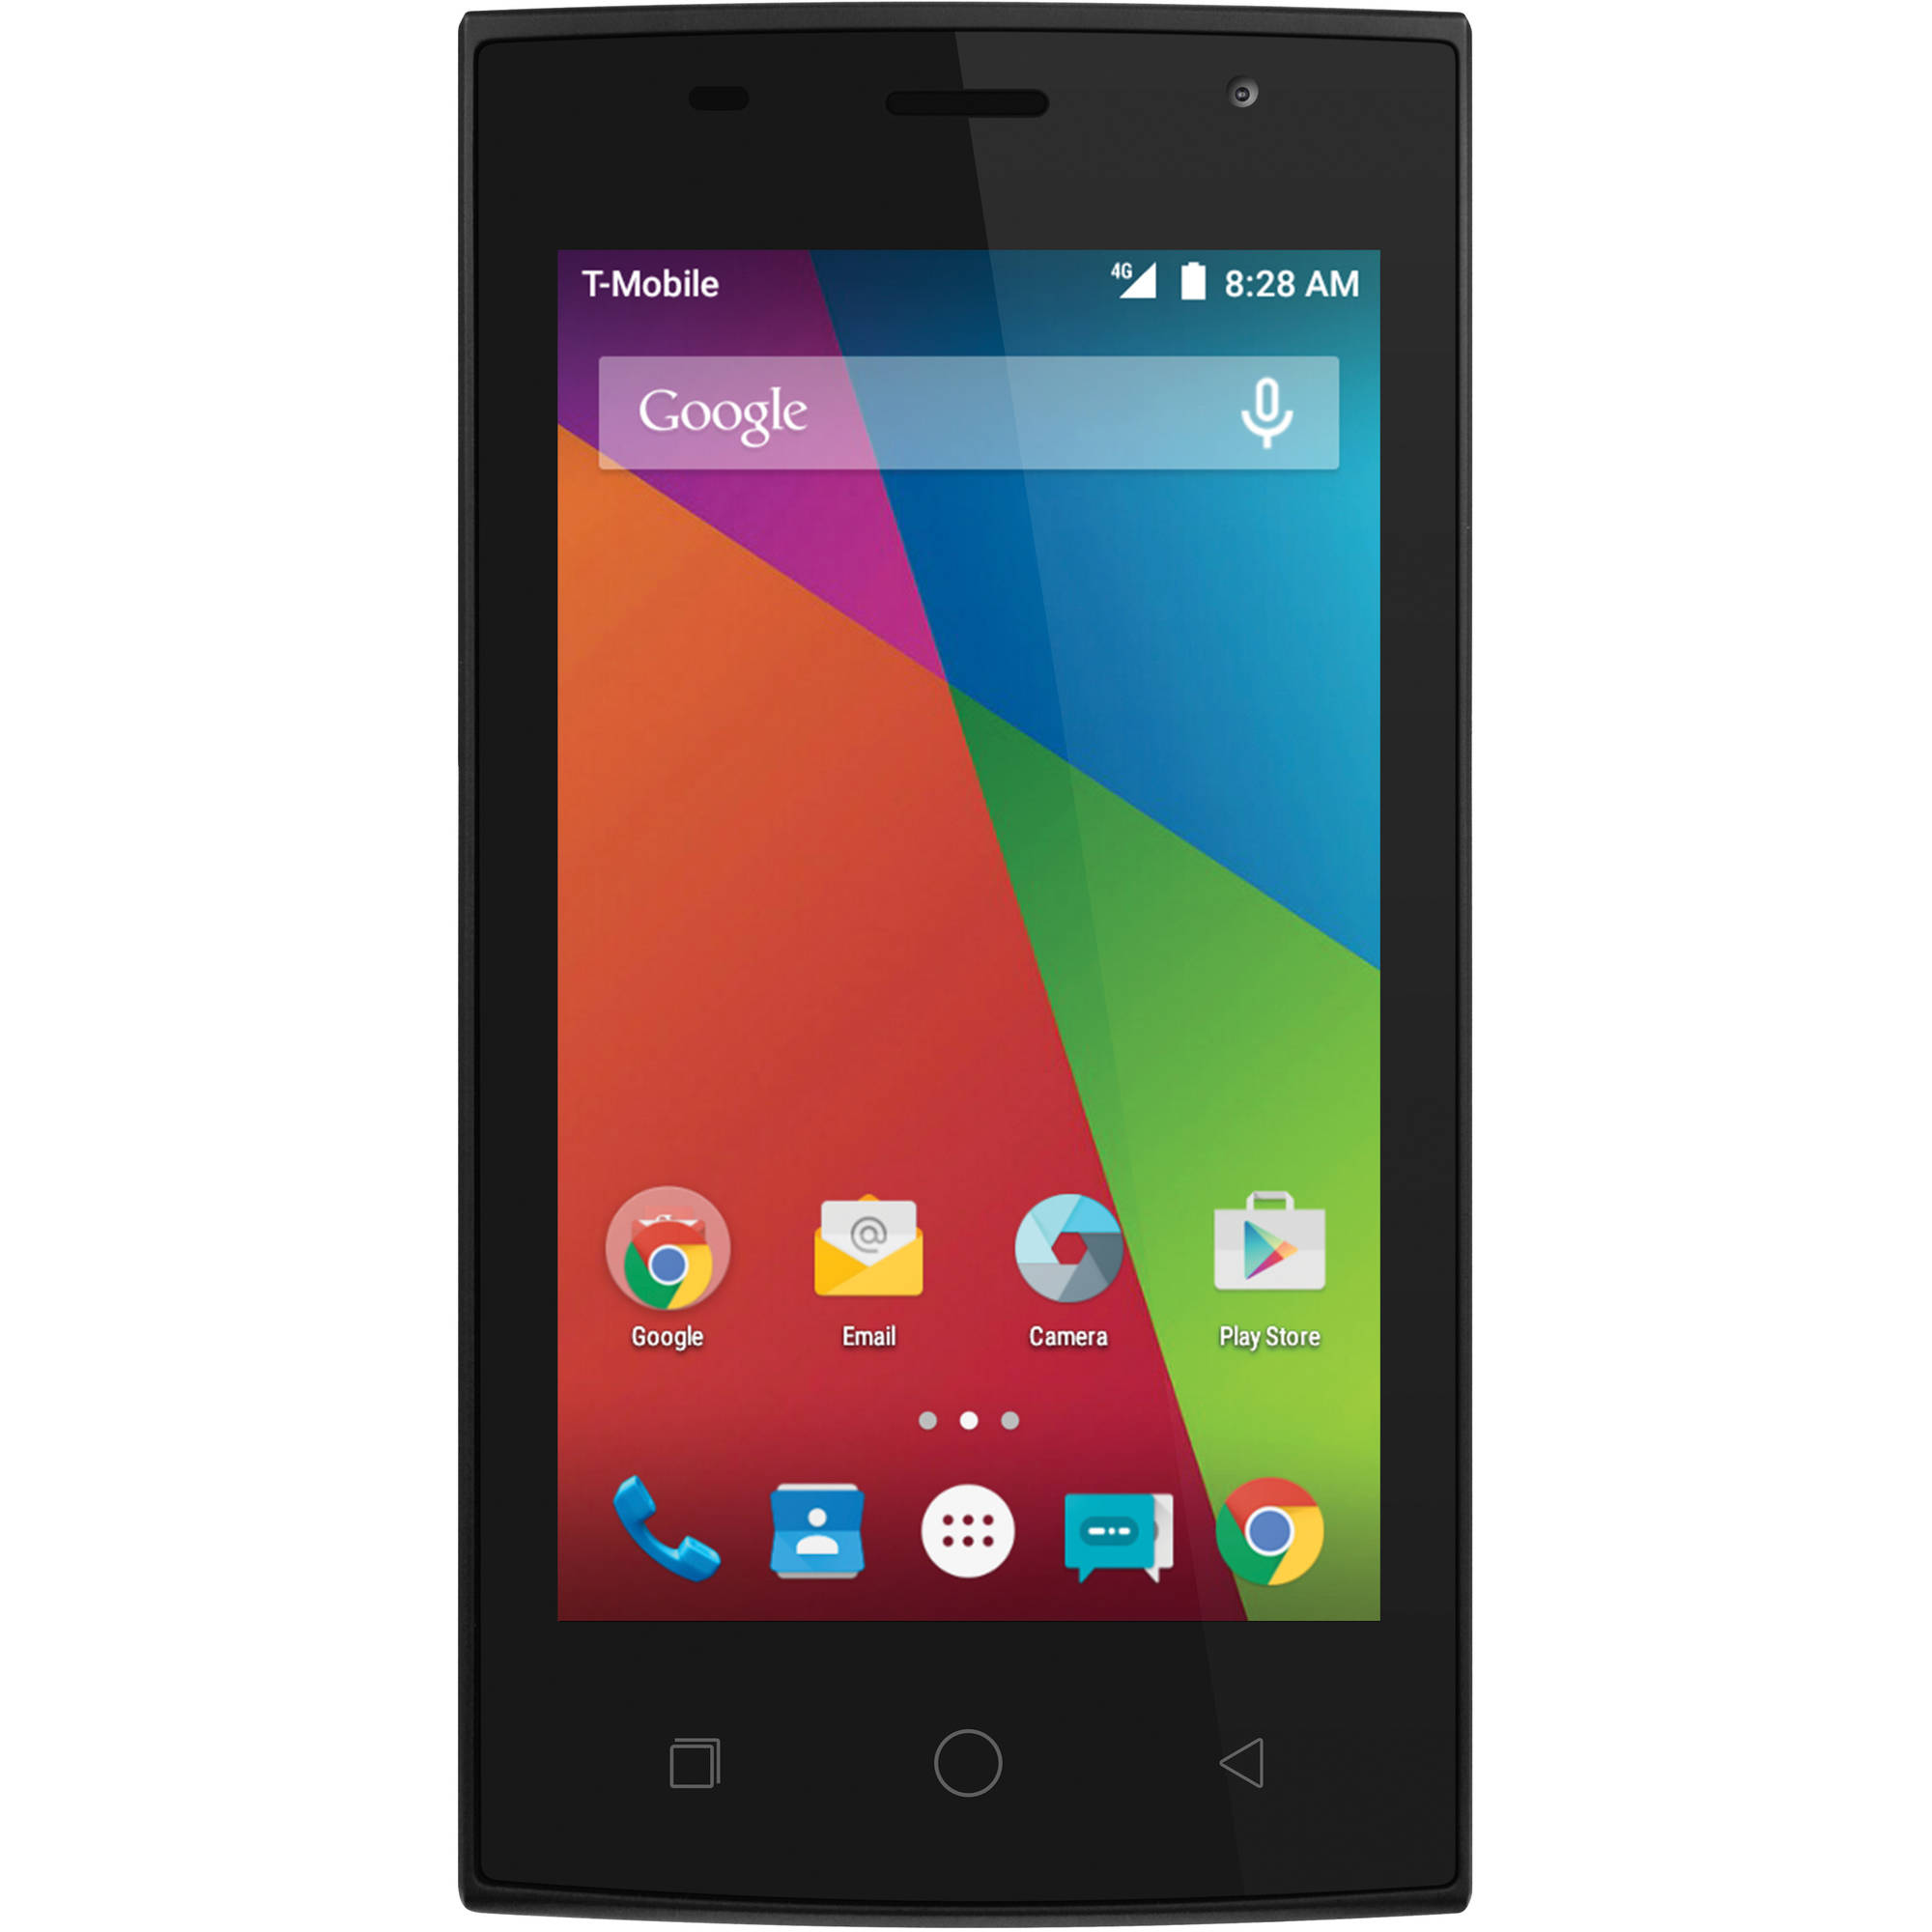 T-Mobile Coolpad Rogue Prepaid Smartphone